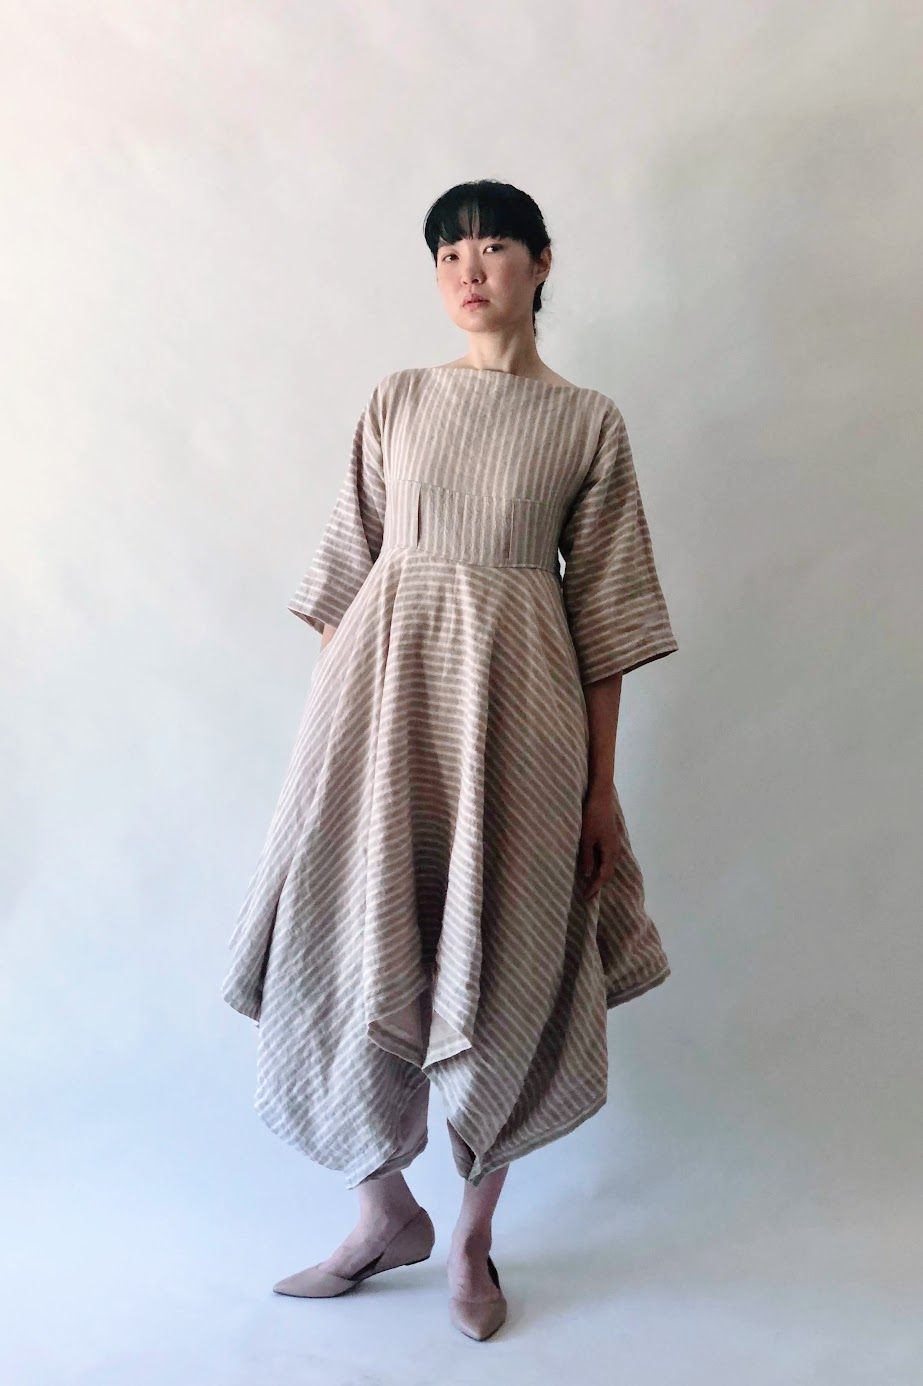 Alternative Wearing Styles with Snap-On Buttons | Handkerchief Dress - FAFAFOOM.COM